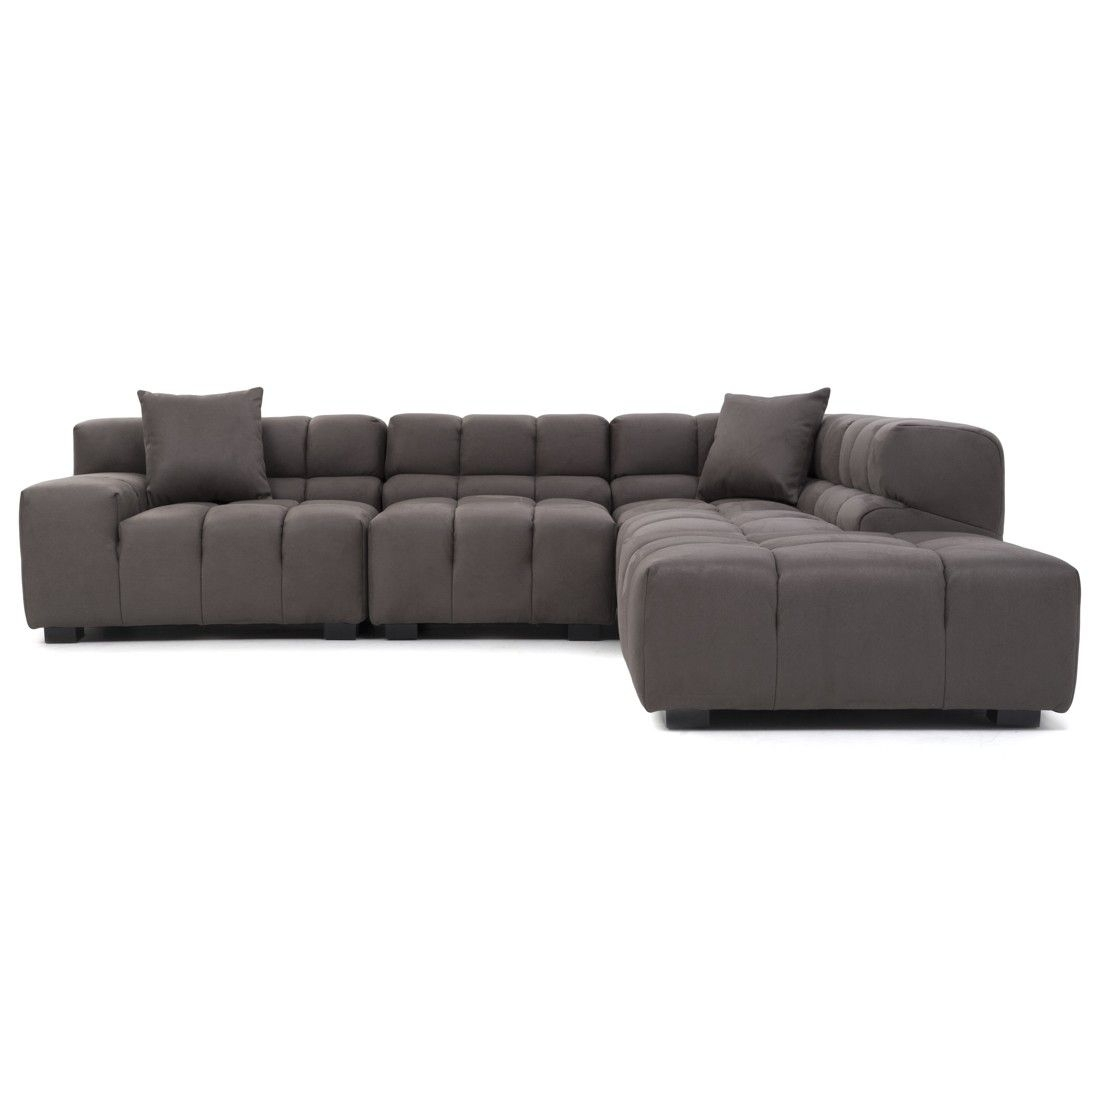 2019 latest mobilia sectional sofas sofa ideas for Mobilia 9 6